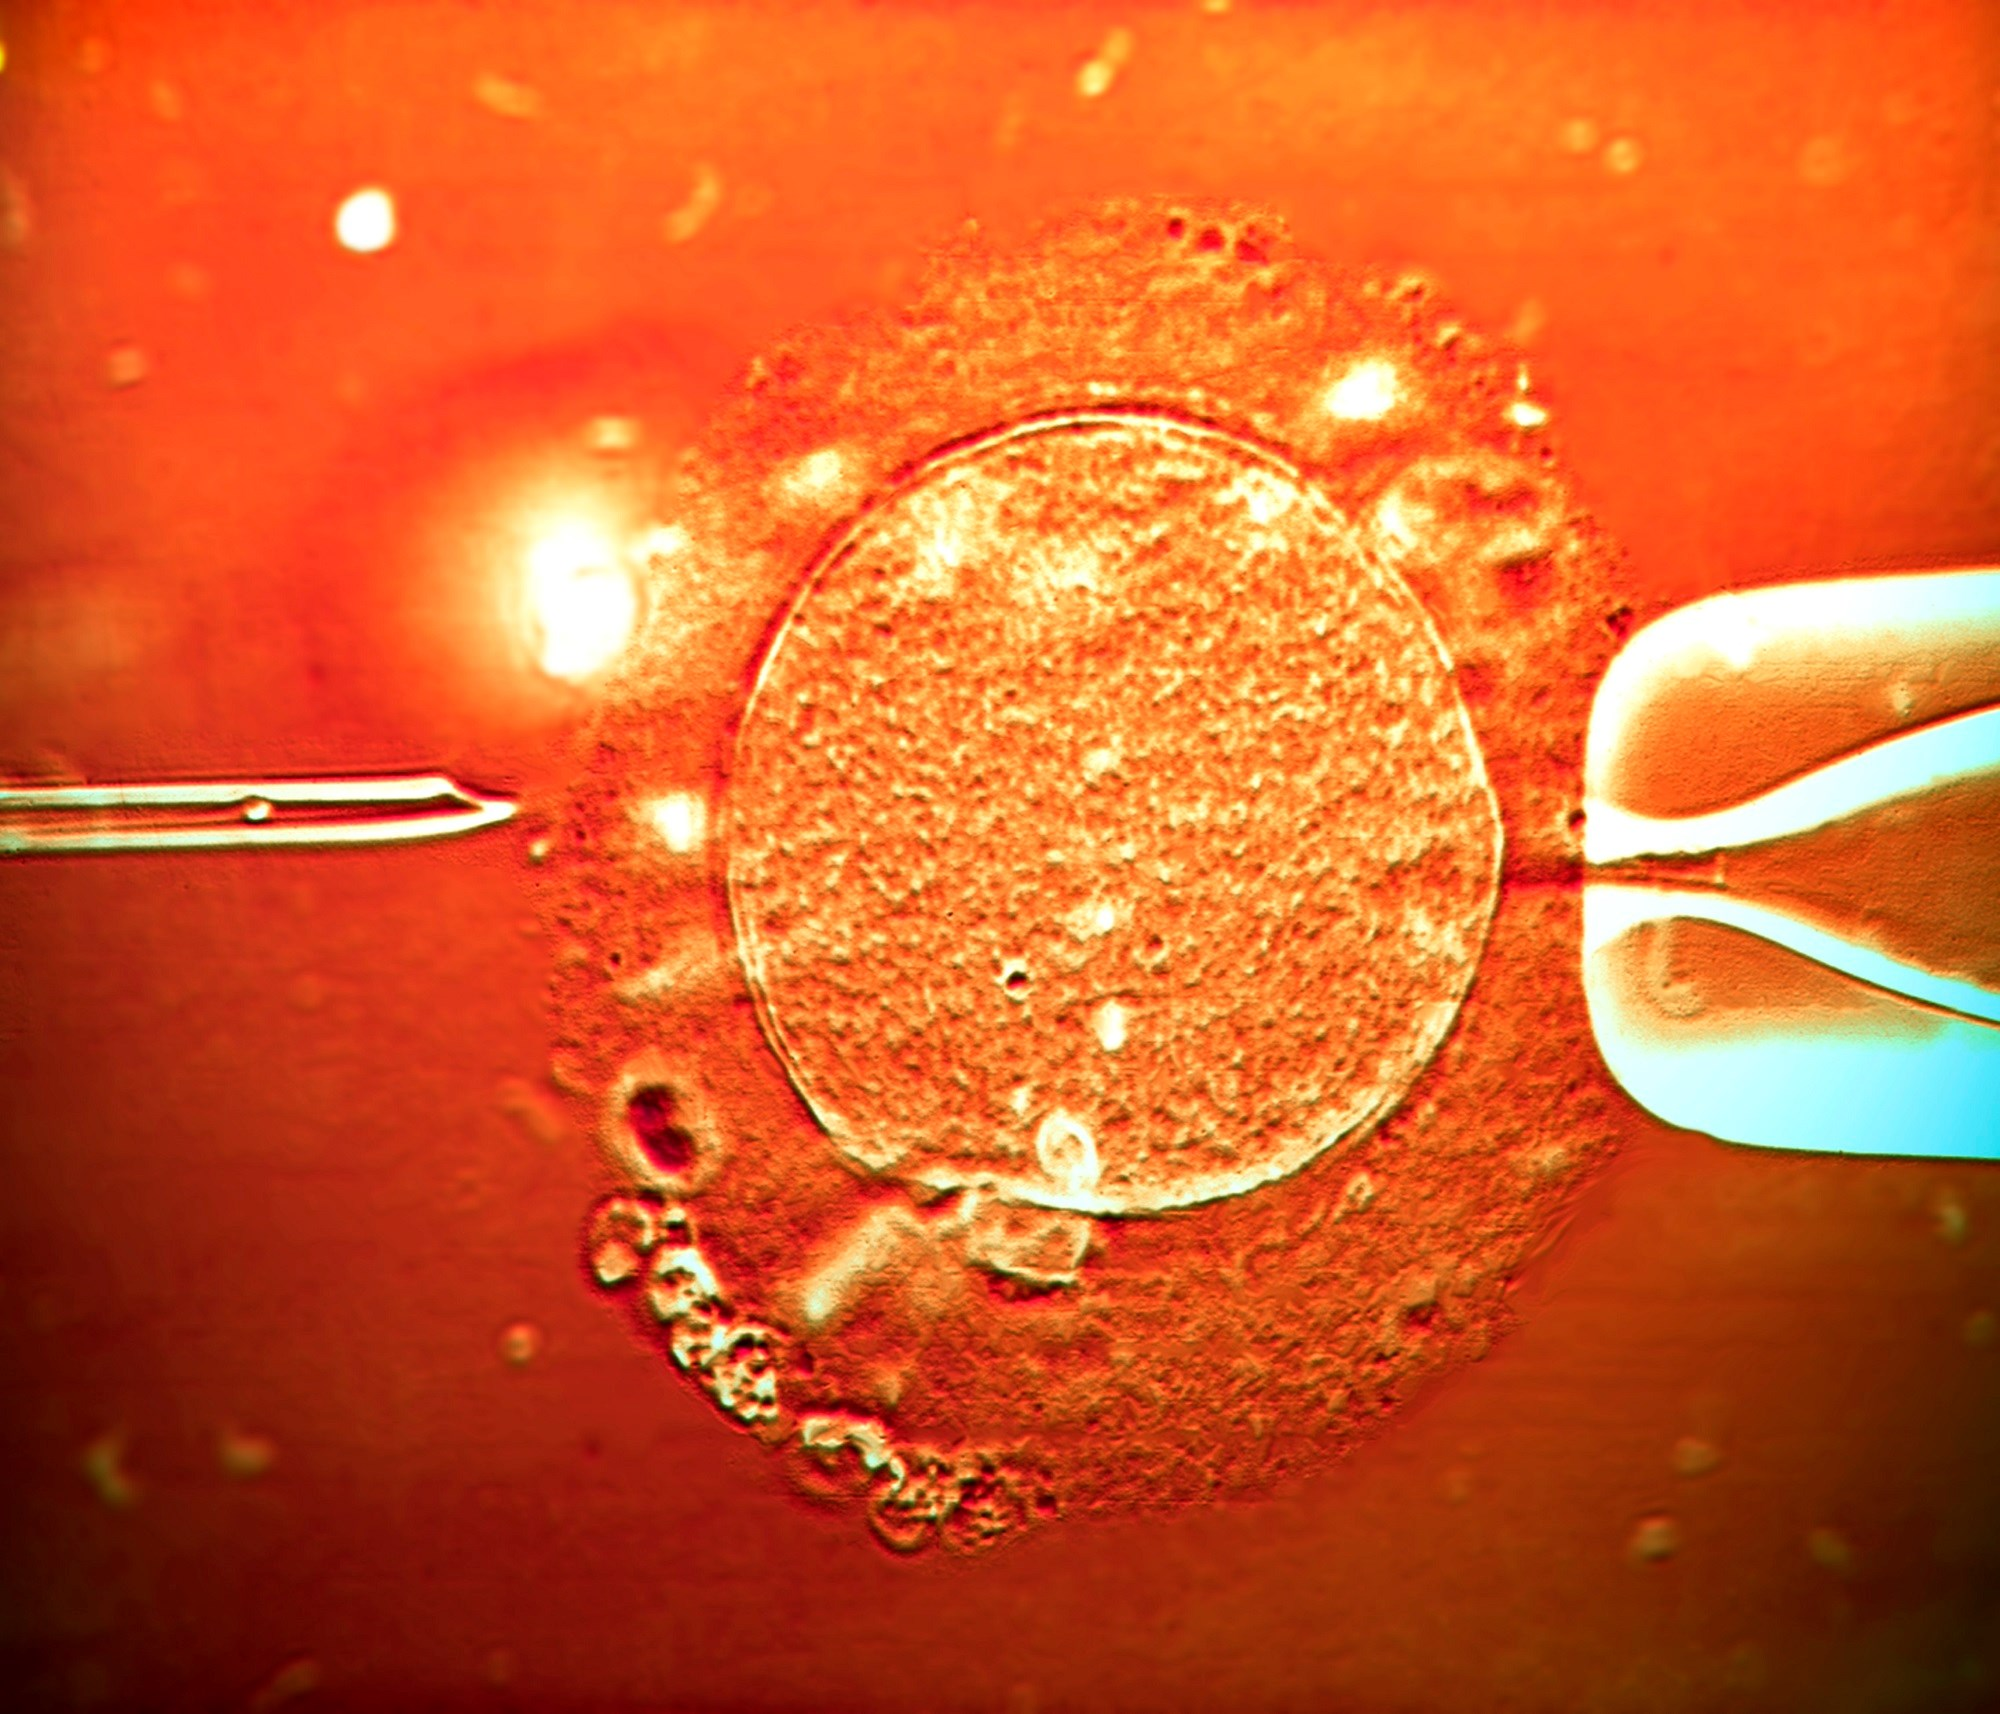 Live Birth Rates Unaffected by Endometrial Scratching During In Vitro Fertilization